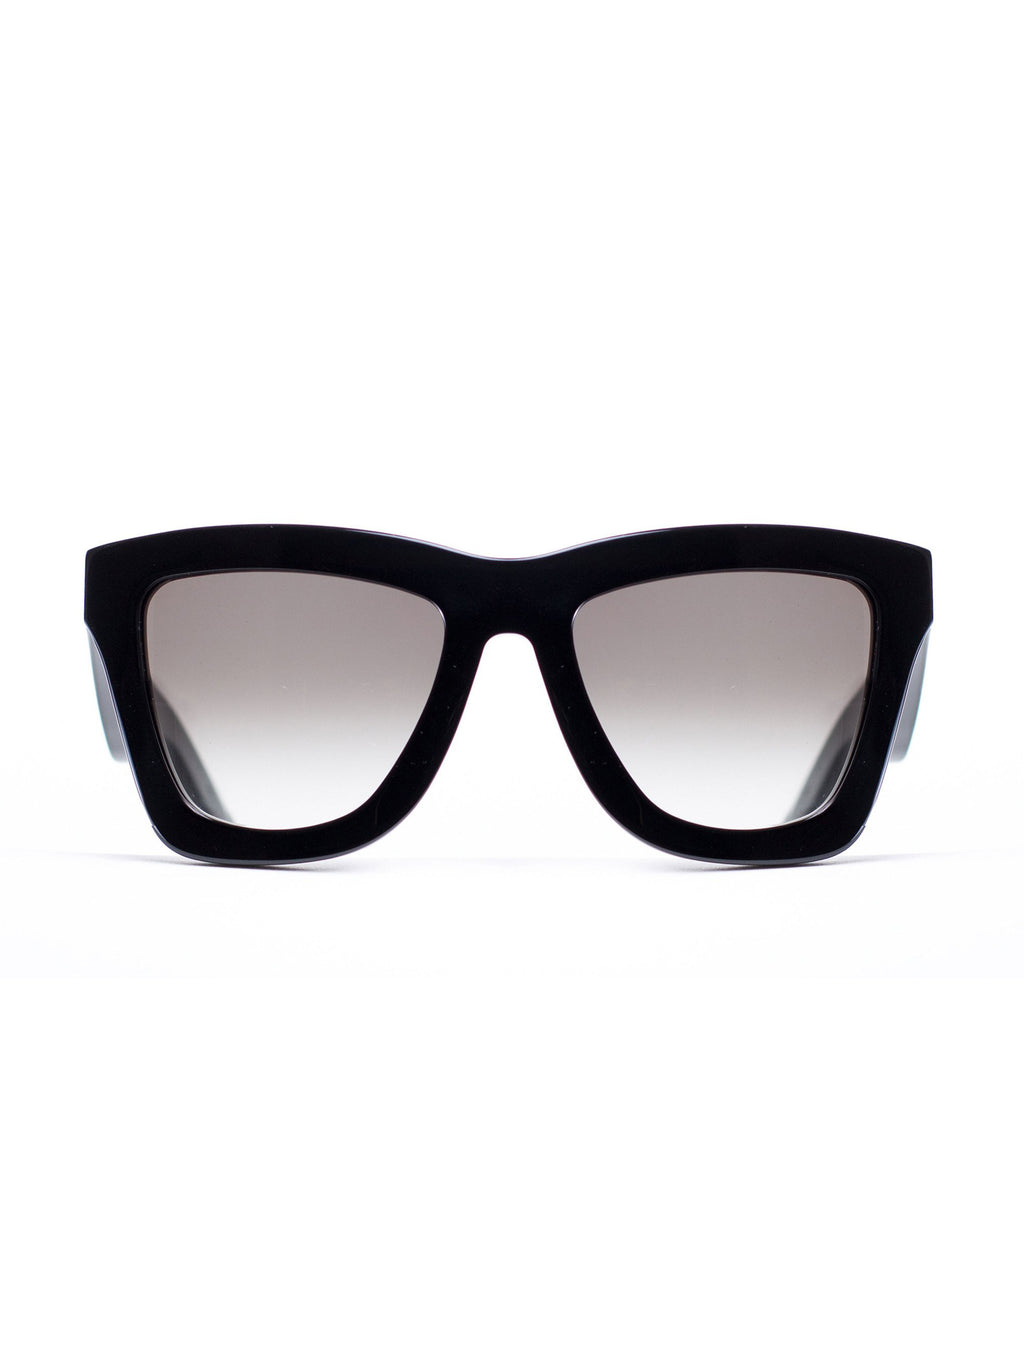 VALLEY EYEWEAR DB | Gloss Black / Black Gradient Lens